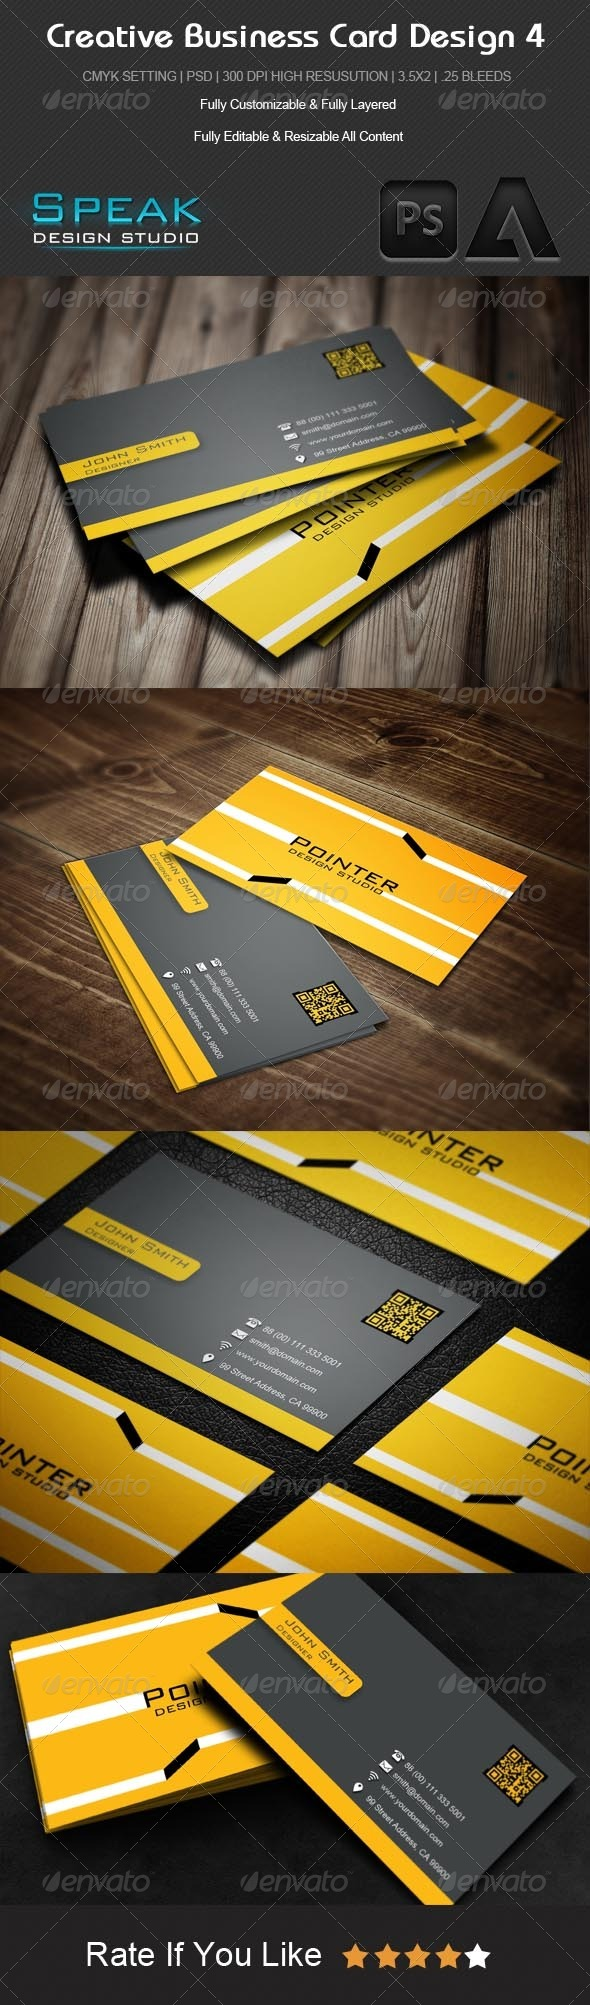 GraphicRiver Corporate Creative Business Card Design 4 5230062